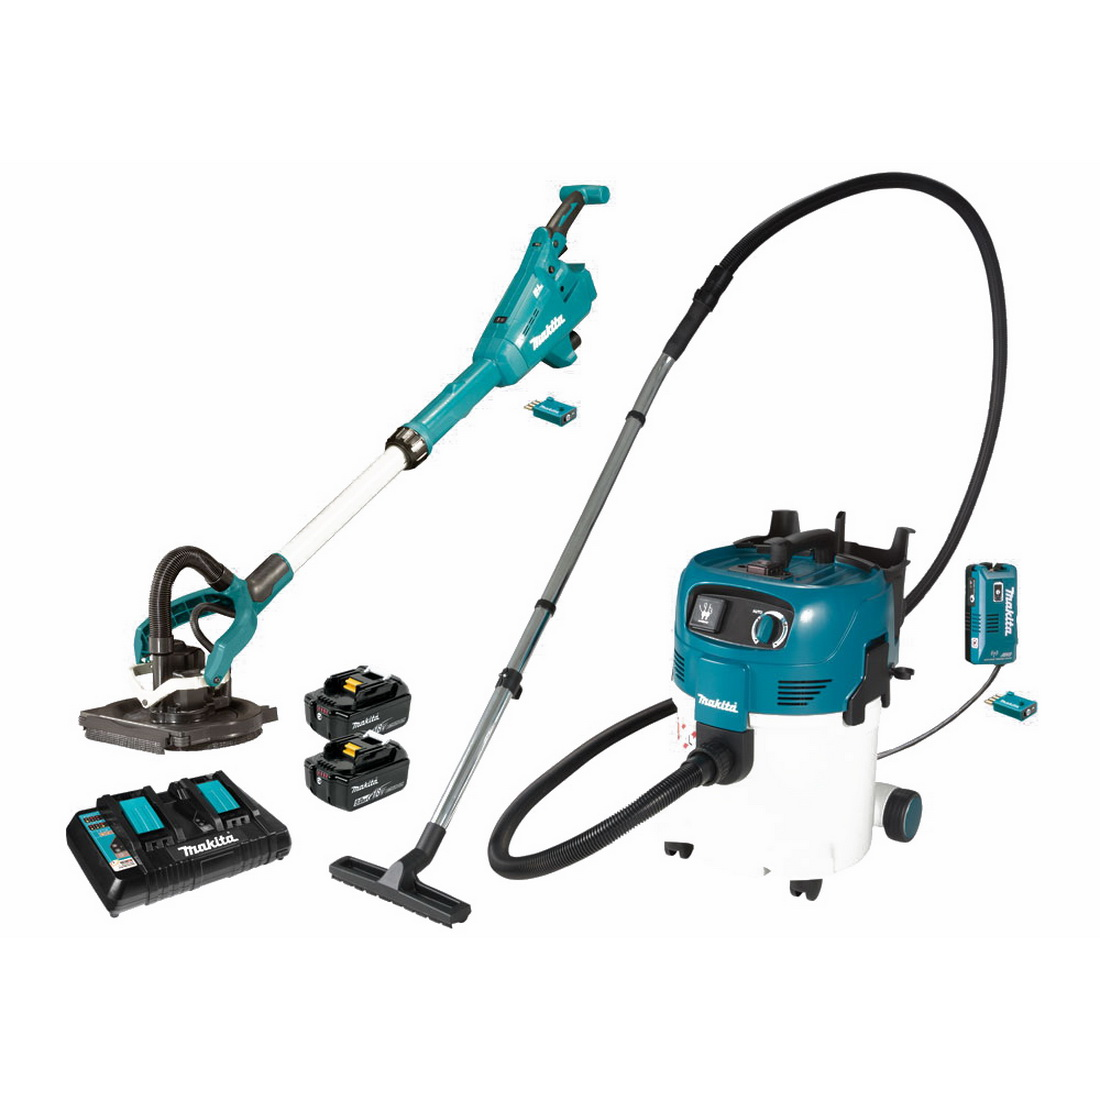 18V 5Ah 2-Piece Lithium-Ion Brushless Drywall Sander & L-Class Vacuum Kit